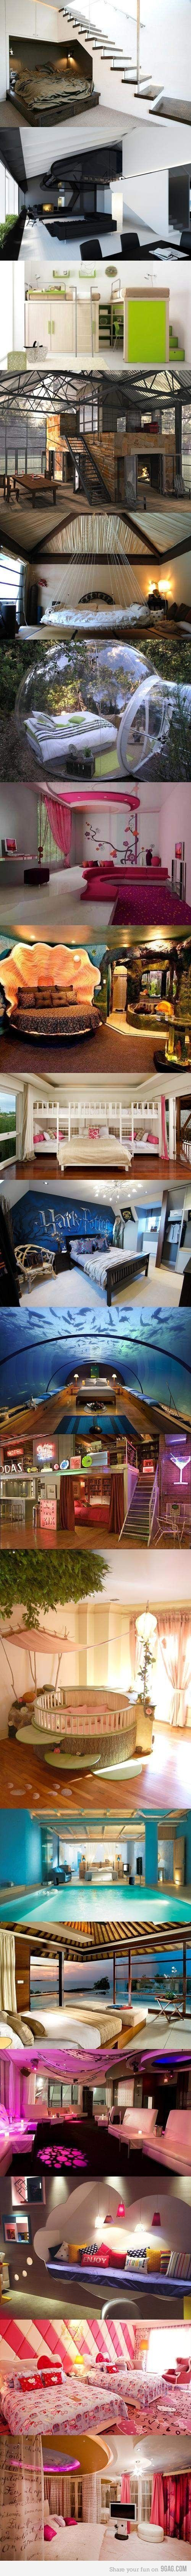 Dream Bedrooms.: Dreams Bedrooms, Dreams Home, Dreams Houses, Cool Bedrooms, Dreams Rooms, Awesome Bedrooms, Harry Potter, Bedrooms Ideas, Cool Rooms